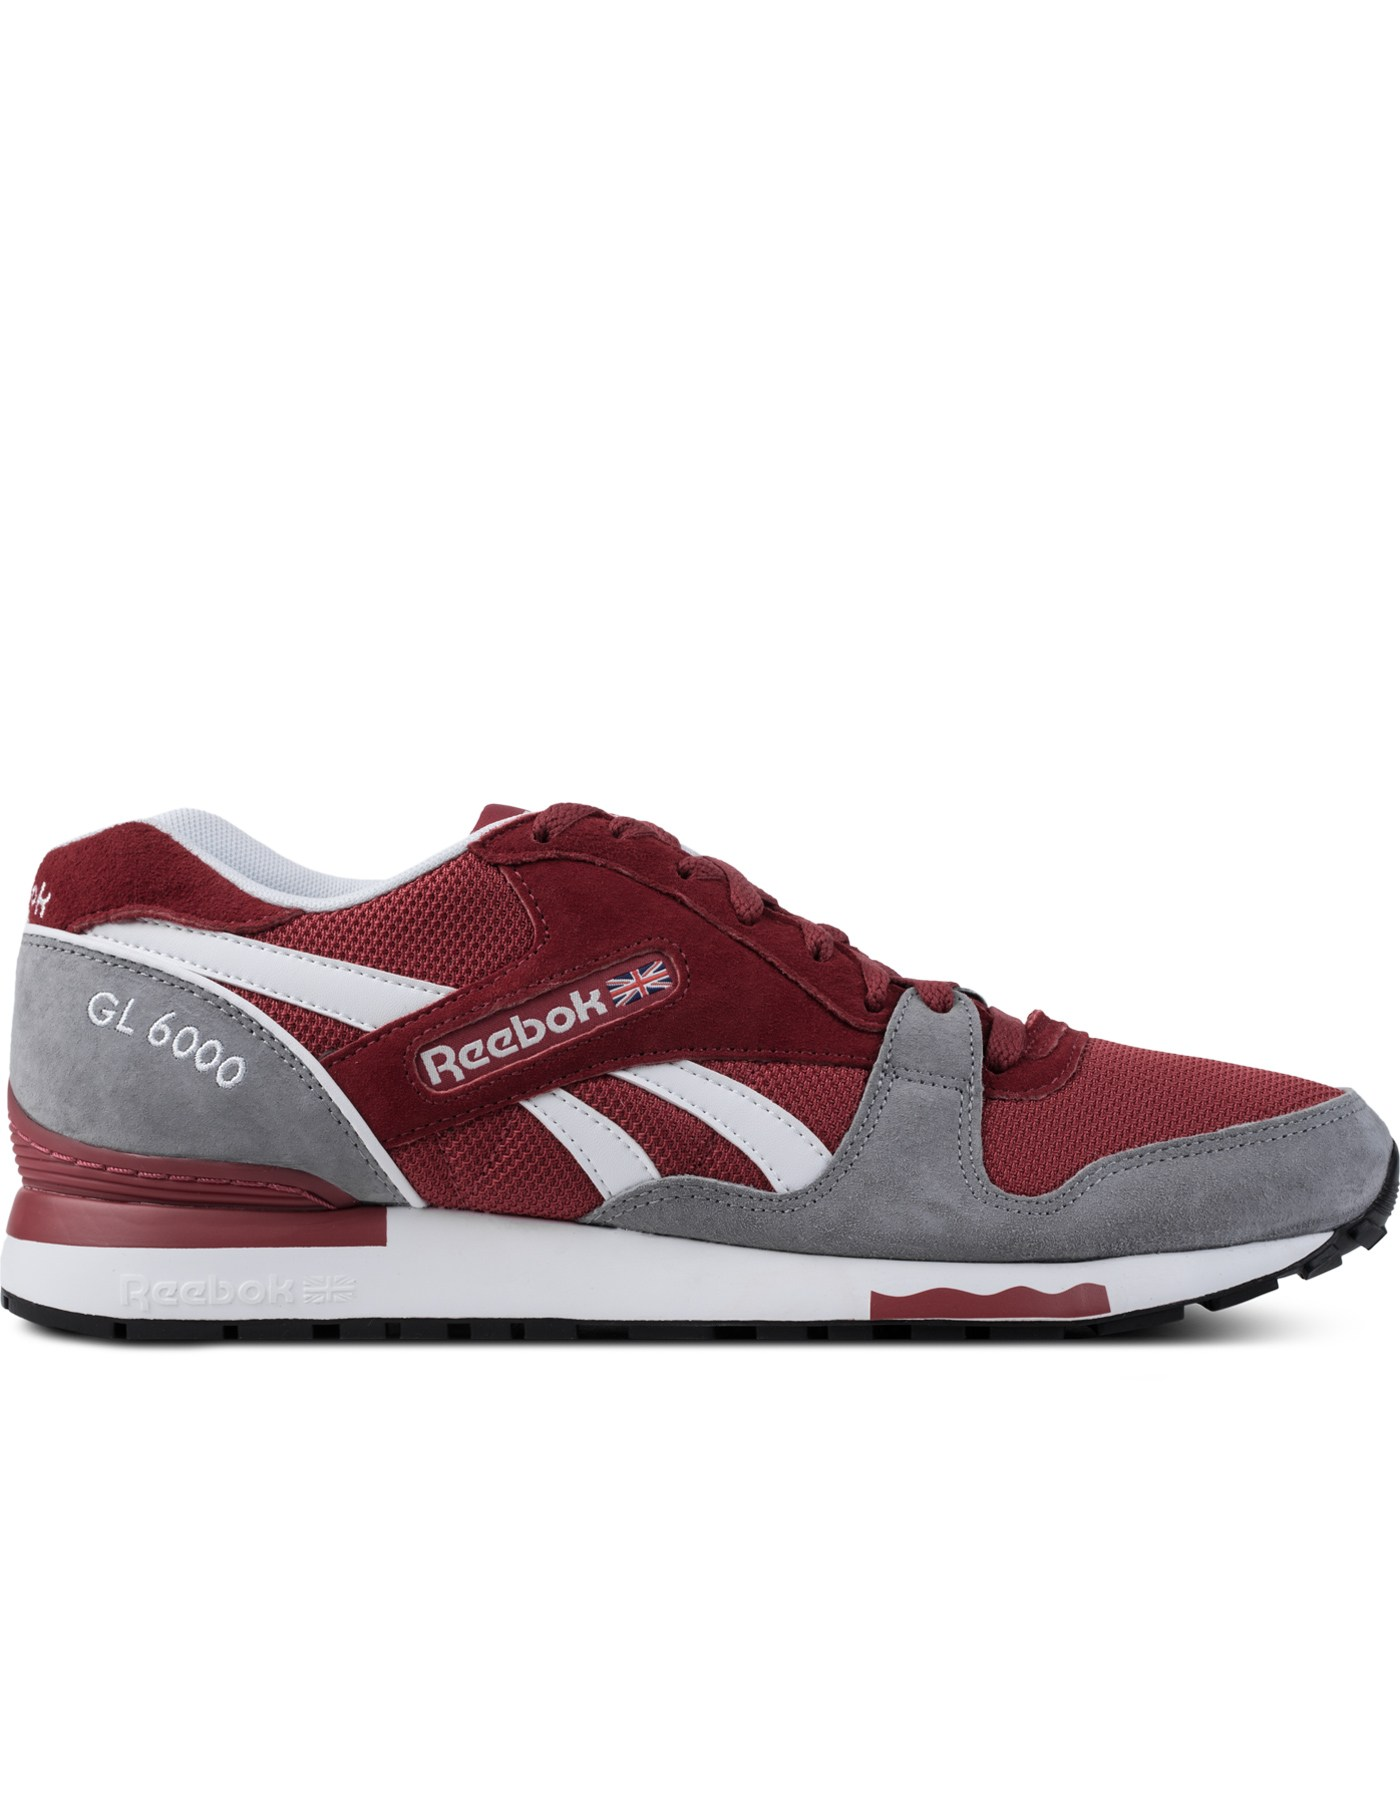 quality and quantity assured largest selection of new styles Flash Red/Flat Grey/White M46407 GL 6000 Shoes, Reebok